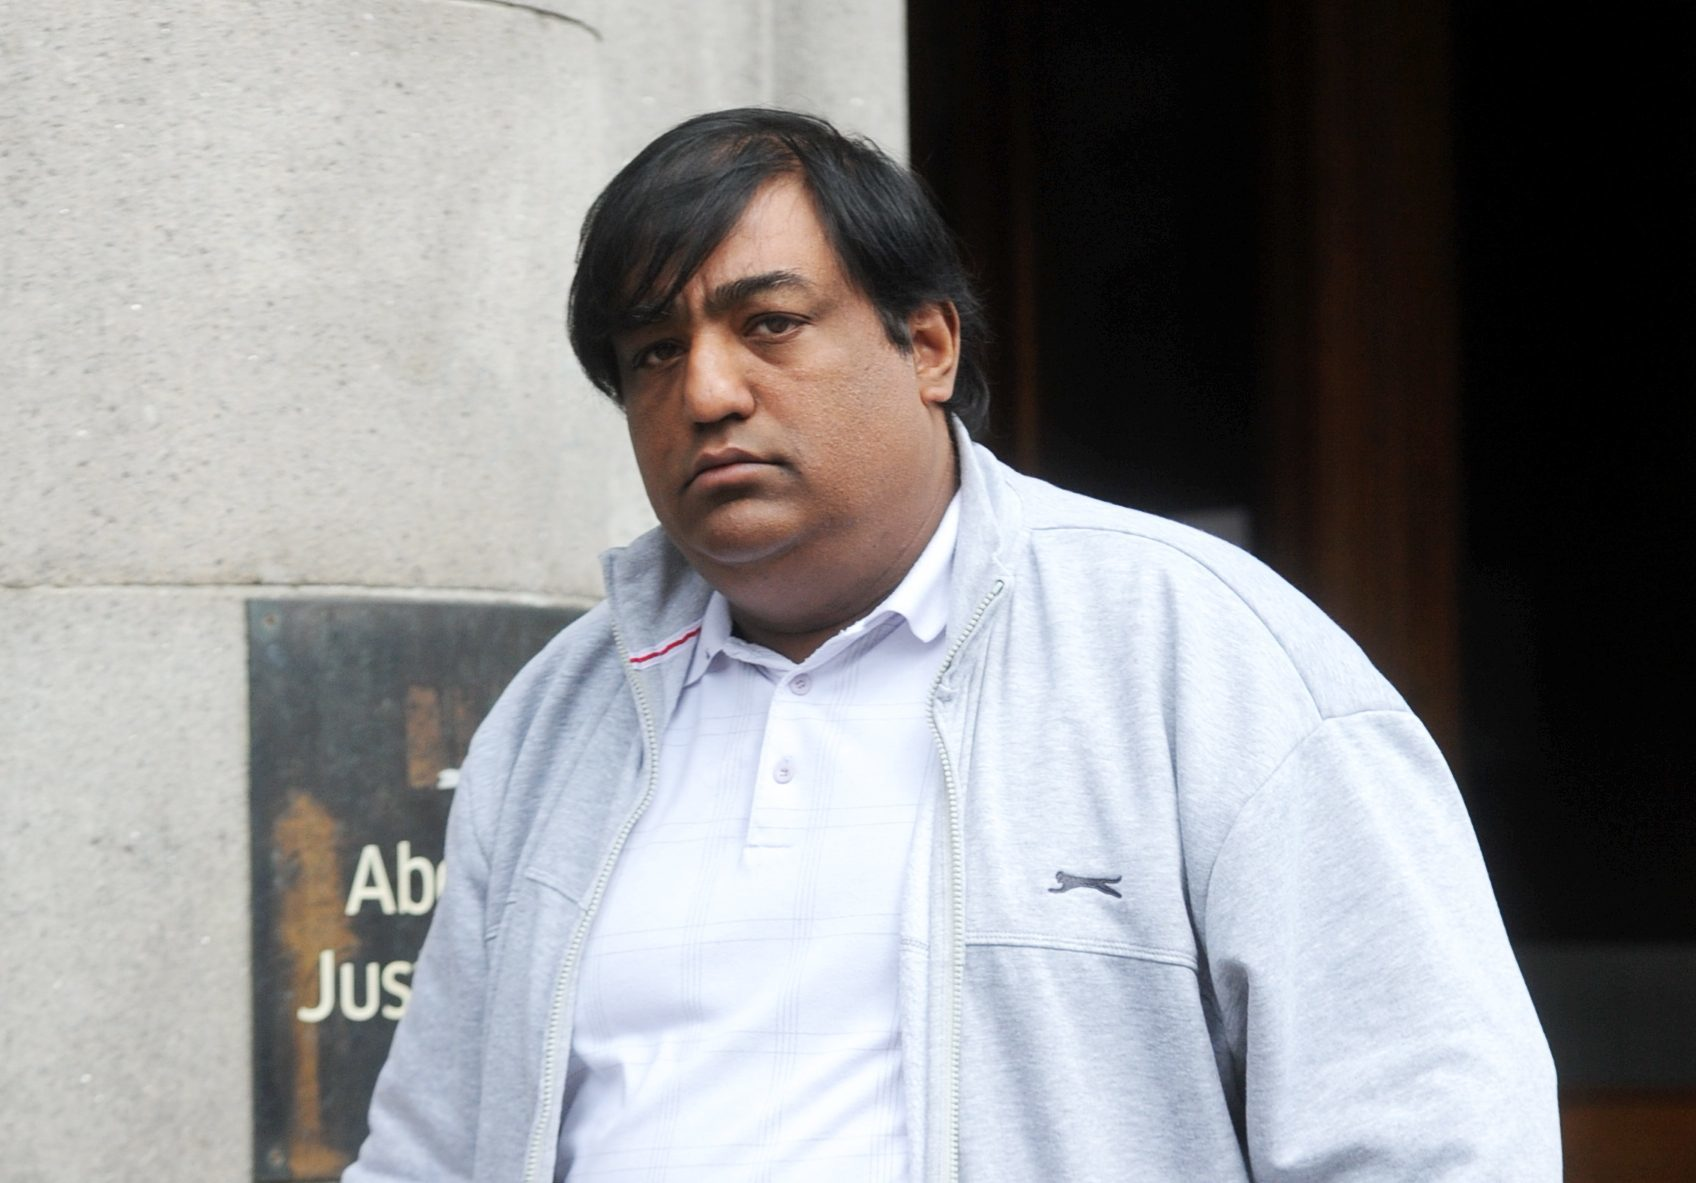 Shriraj Ragindha had 1,000 fake cigarettes in the back of his newsagents.